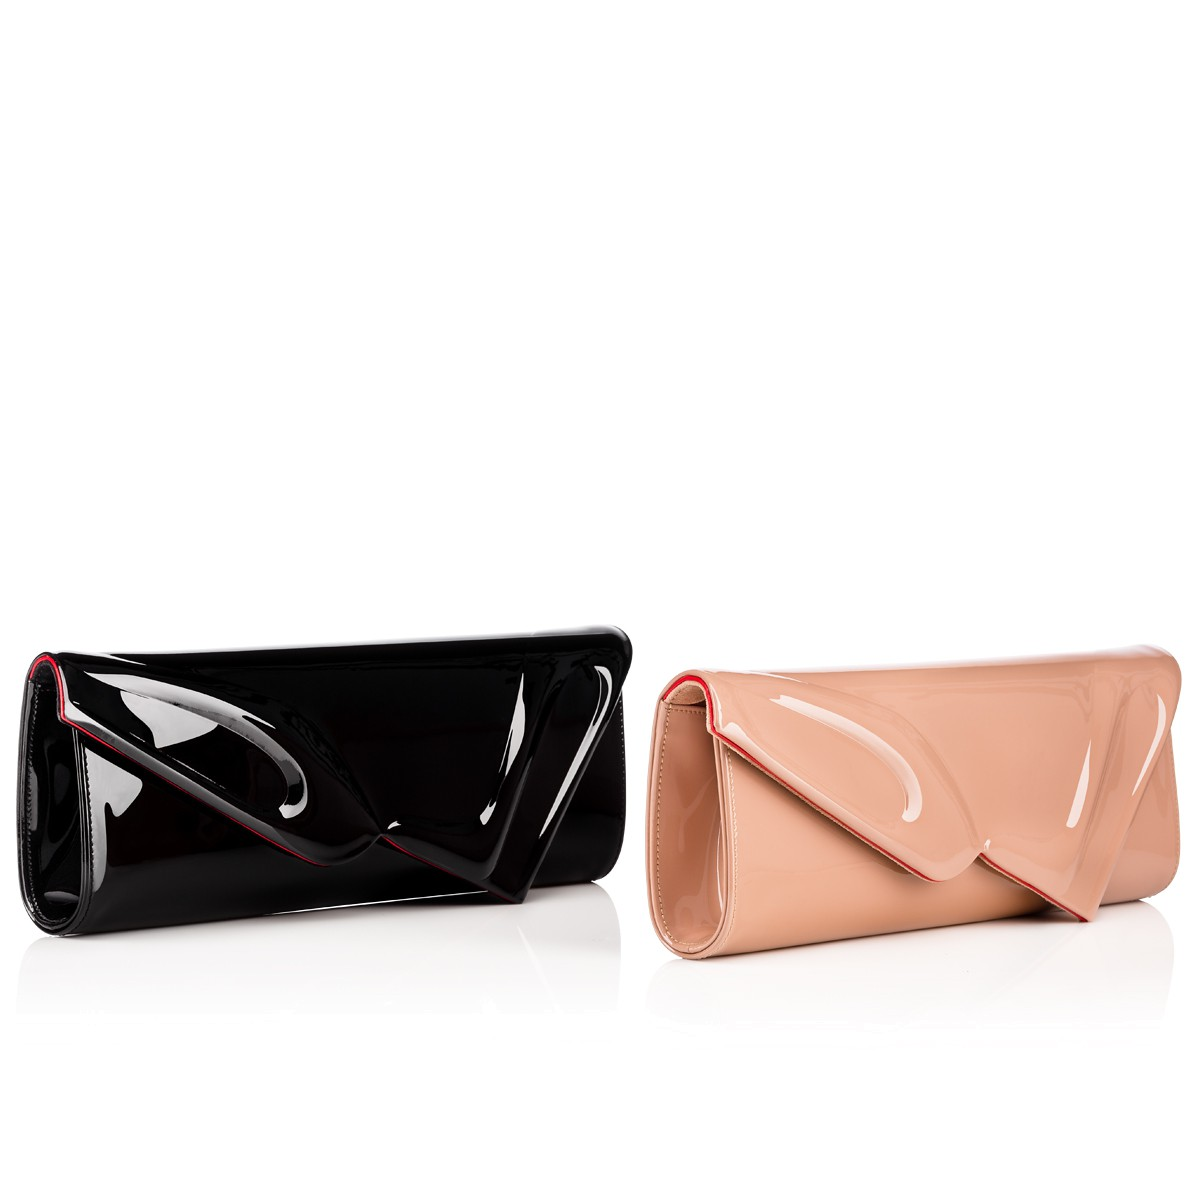 ... Bags - So Kate Clutch - Christian Louboutin ...